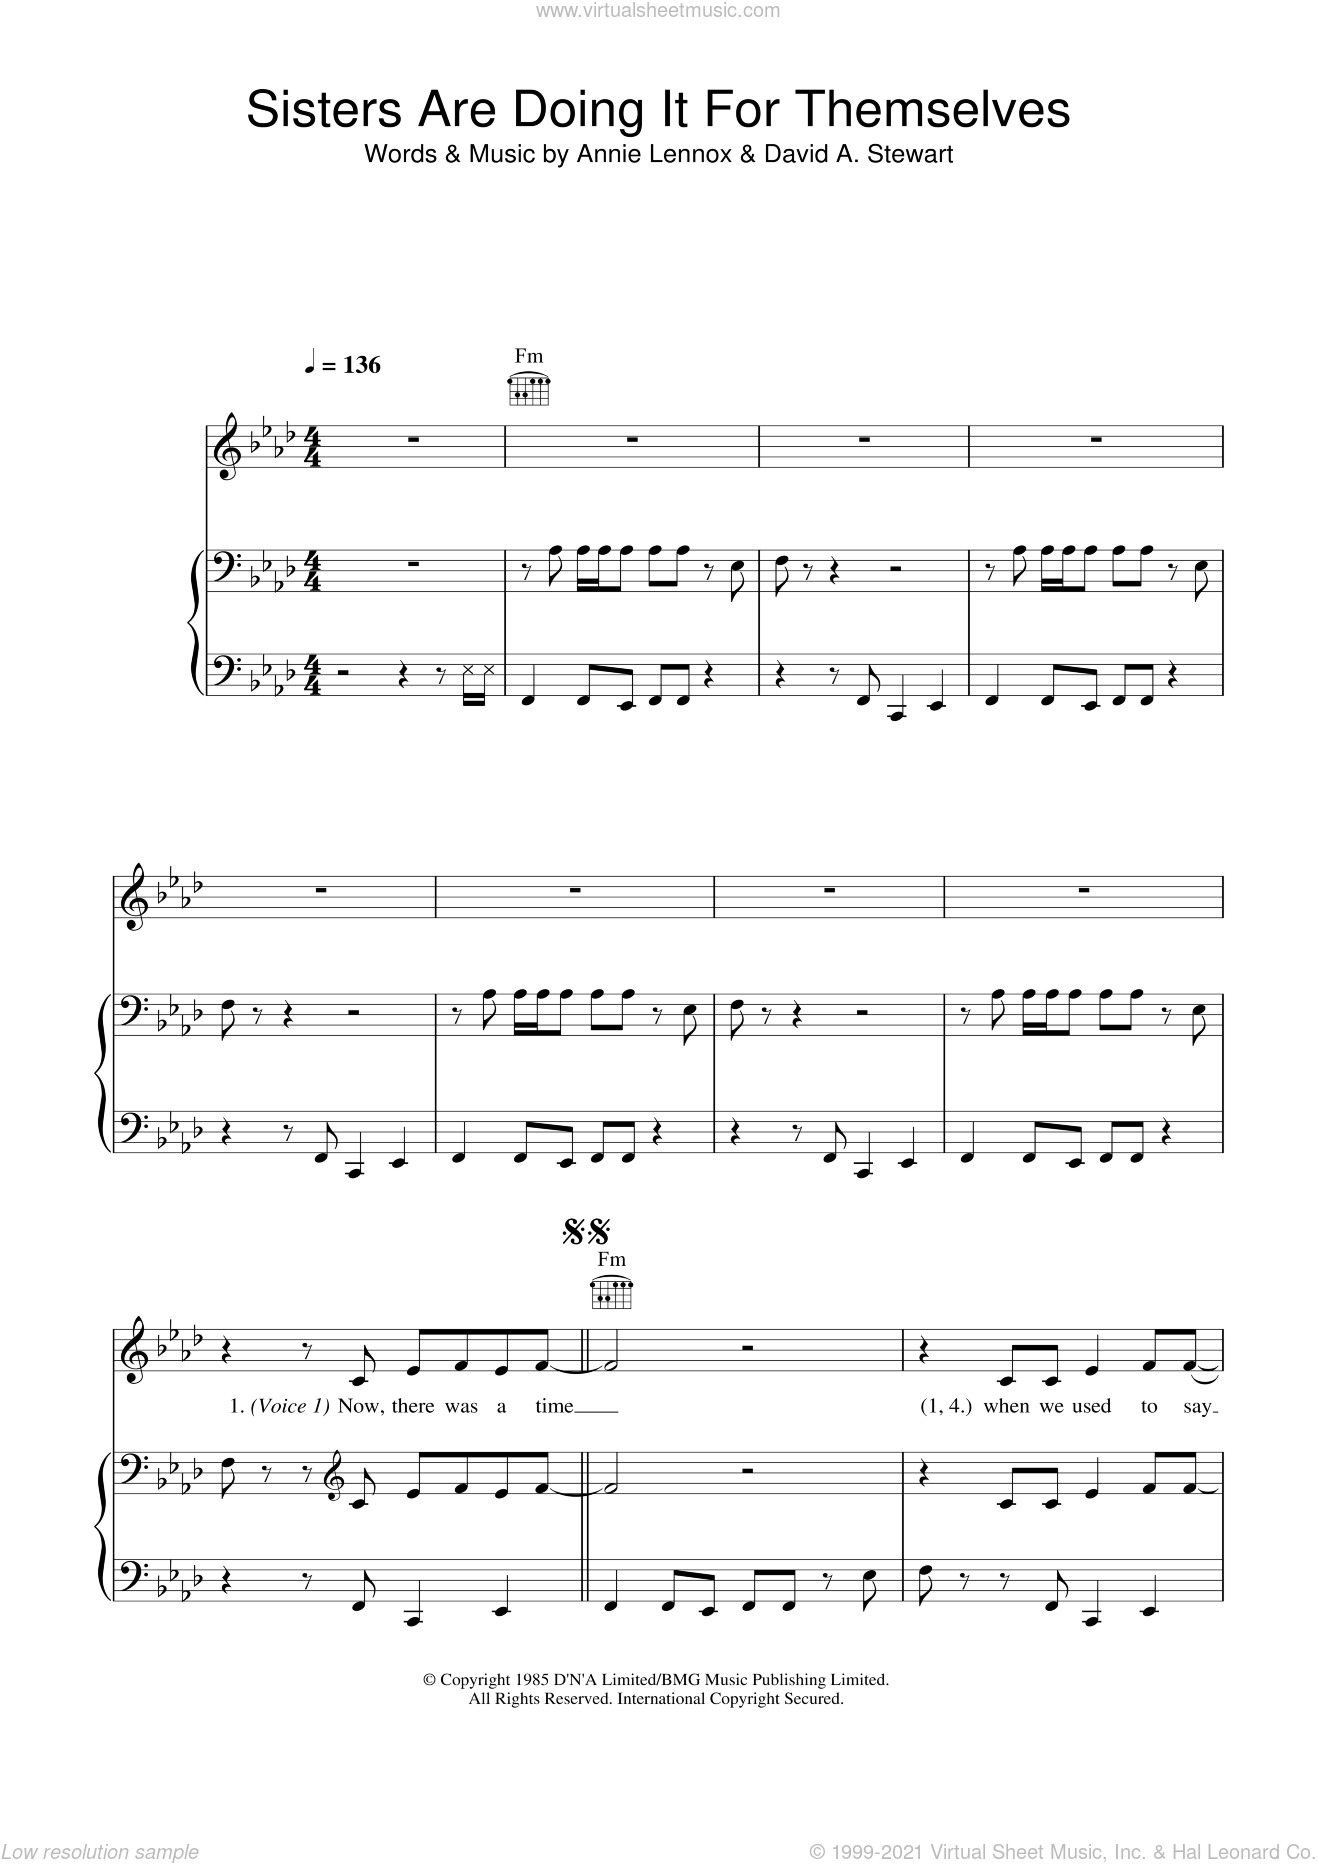 Sisters Are Doing It For Themselves sheet music for voice, piano or guitar by Eurythmics, Annie Lennox and Dave Stewart, intermediate skill level